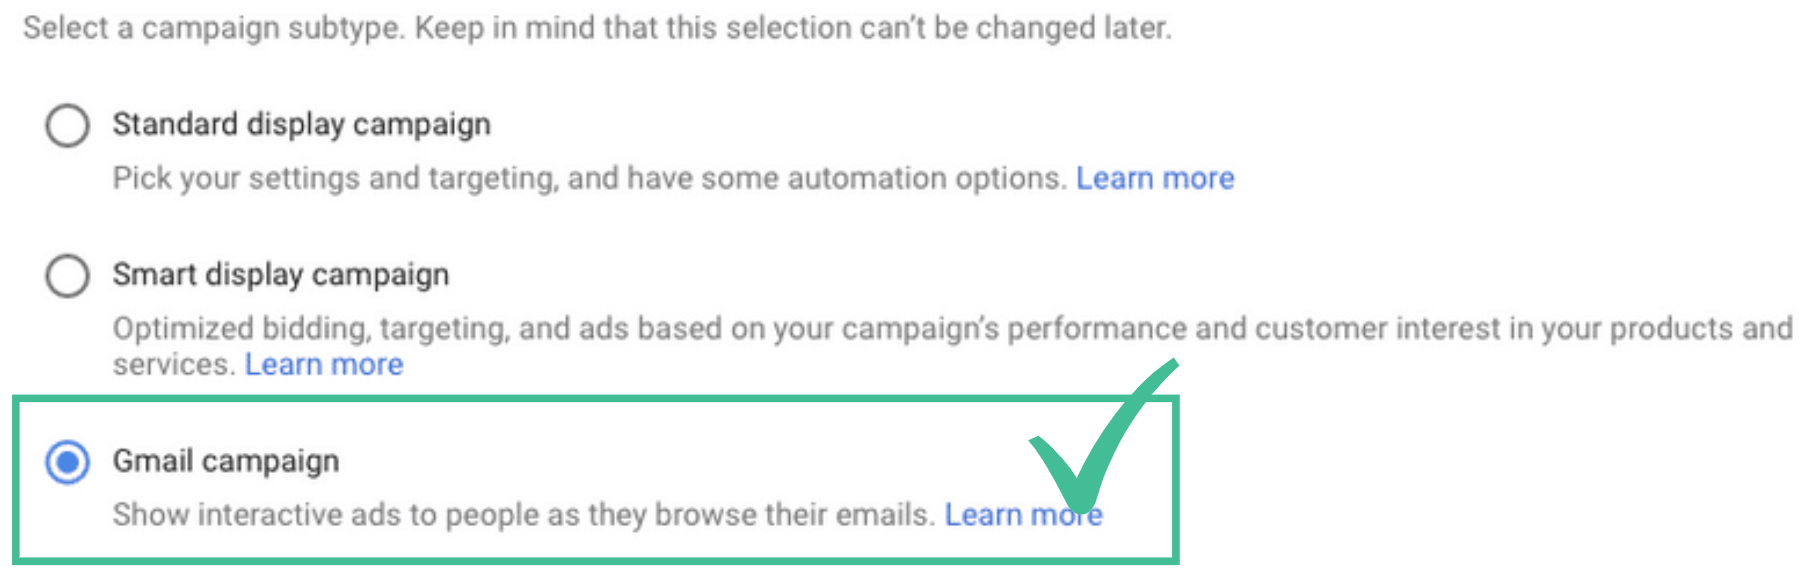 Campaign subtype: Gmail campaign